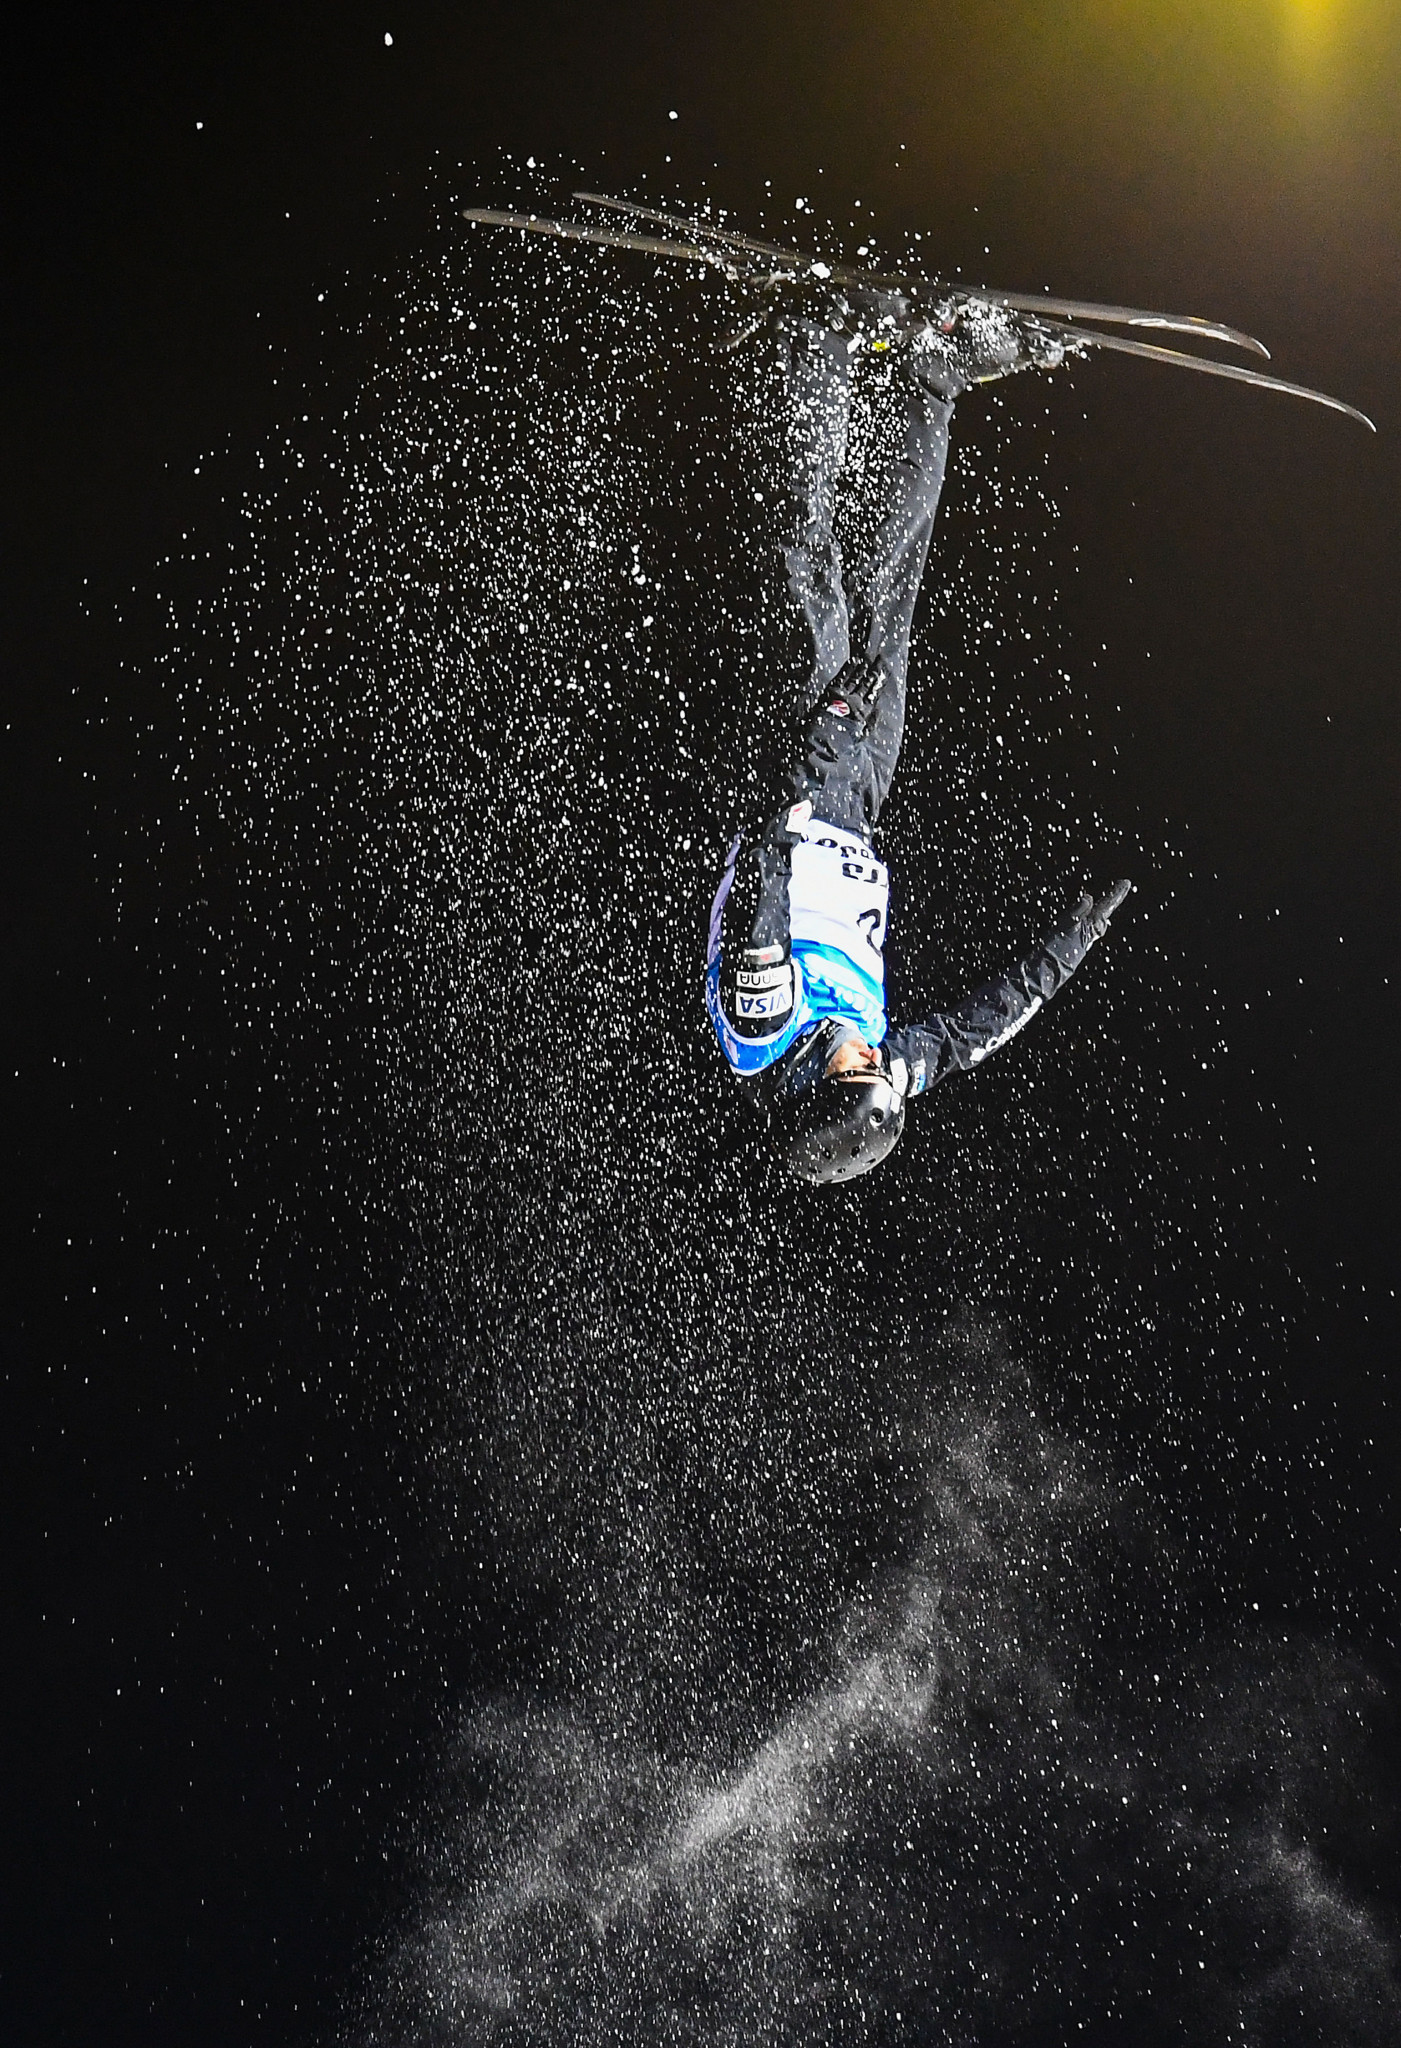 Michael's brother Jon Lillis won the aerials world title this year ©Getty Images